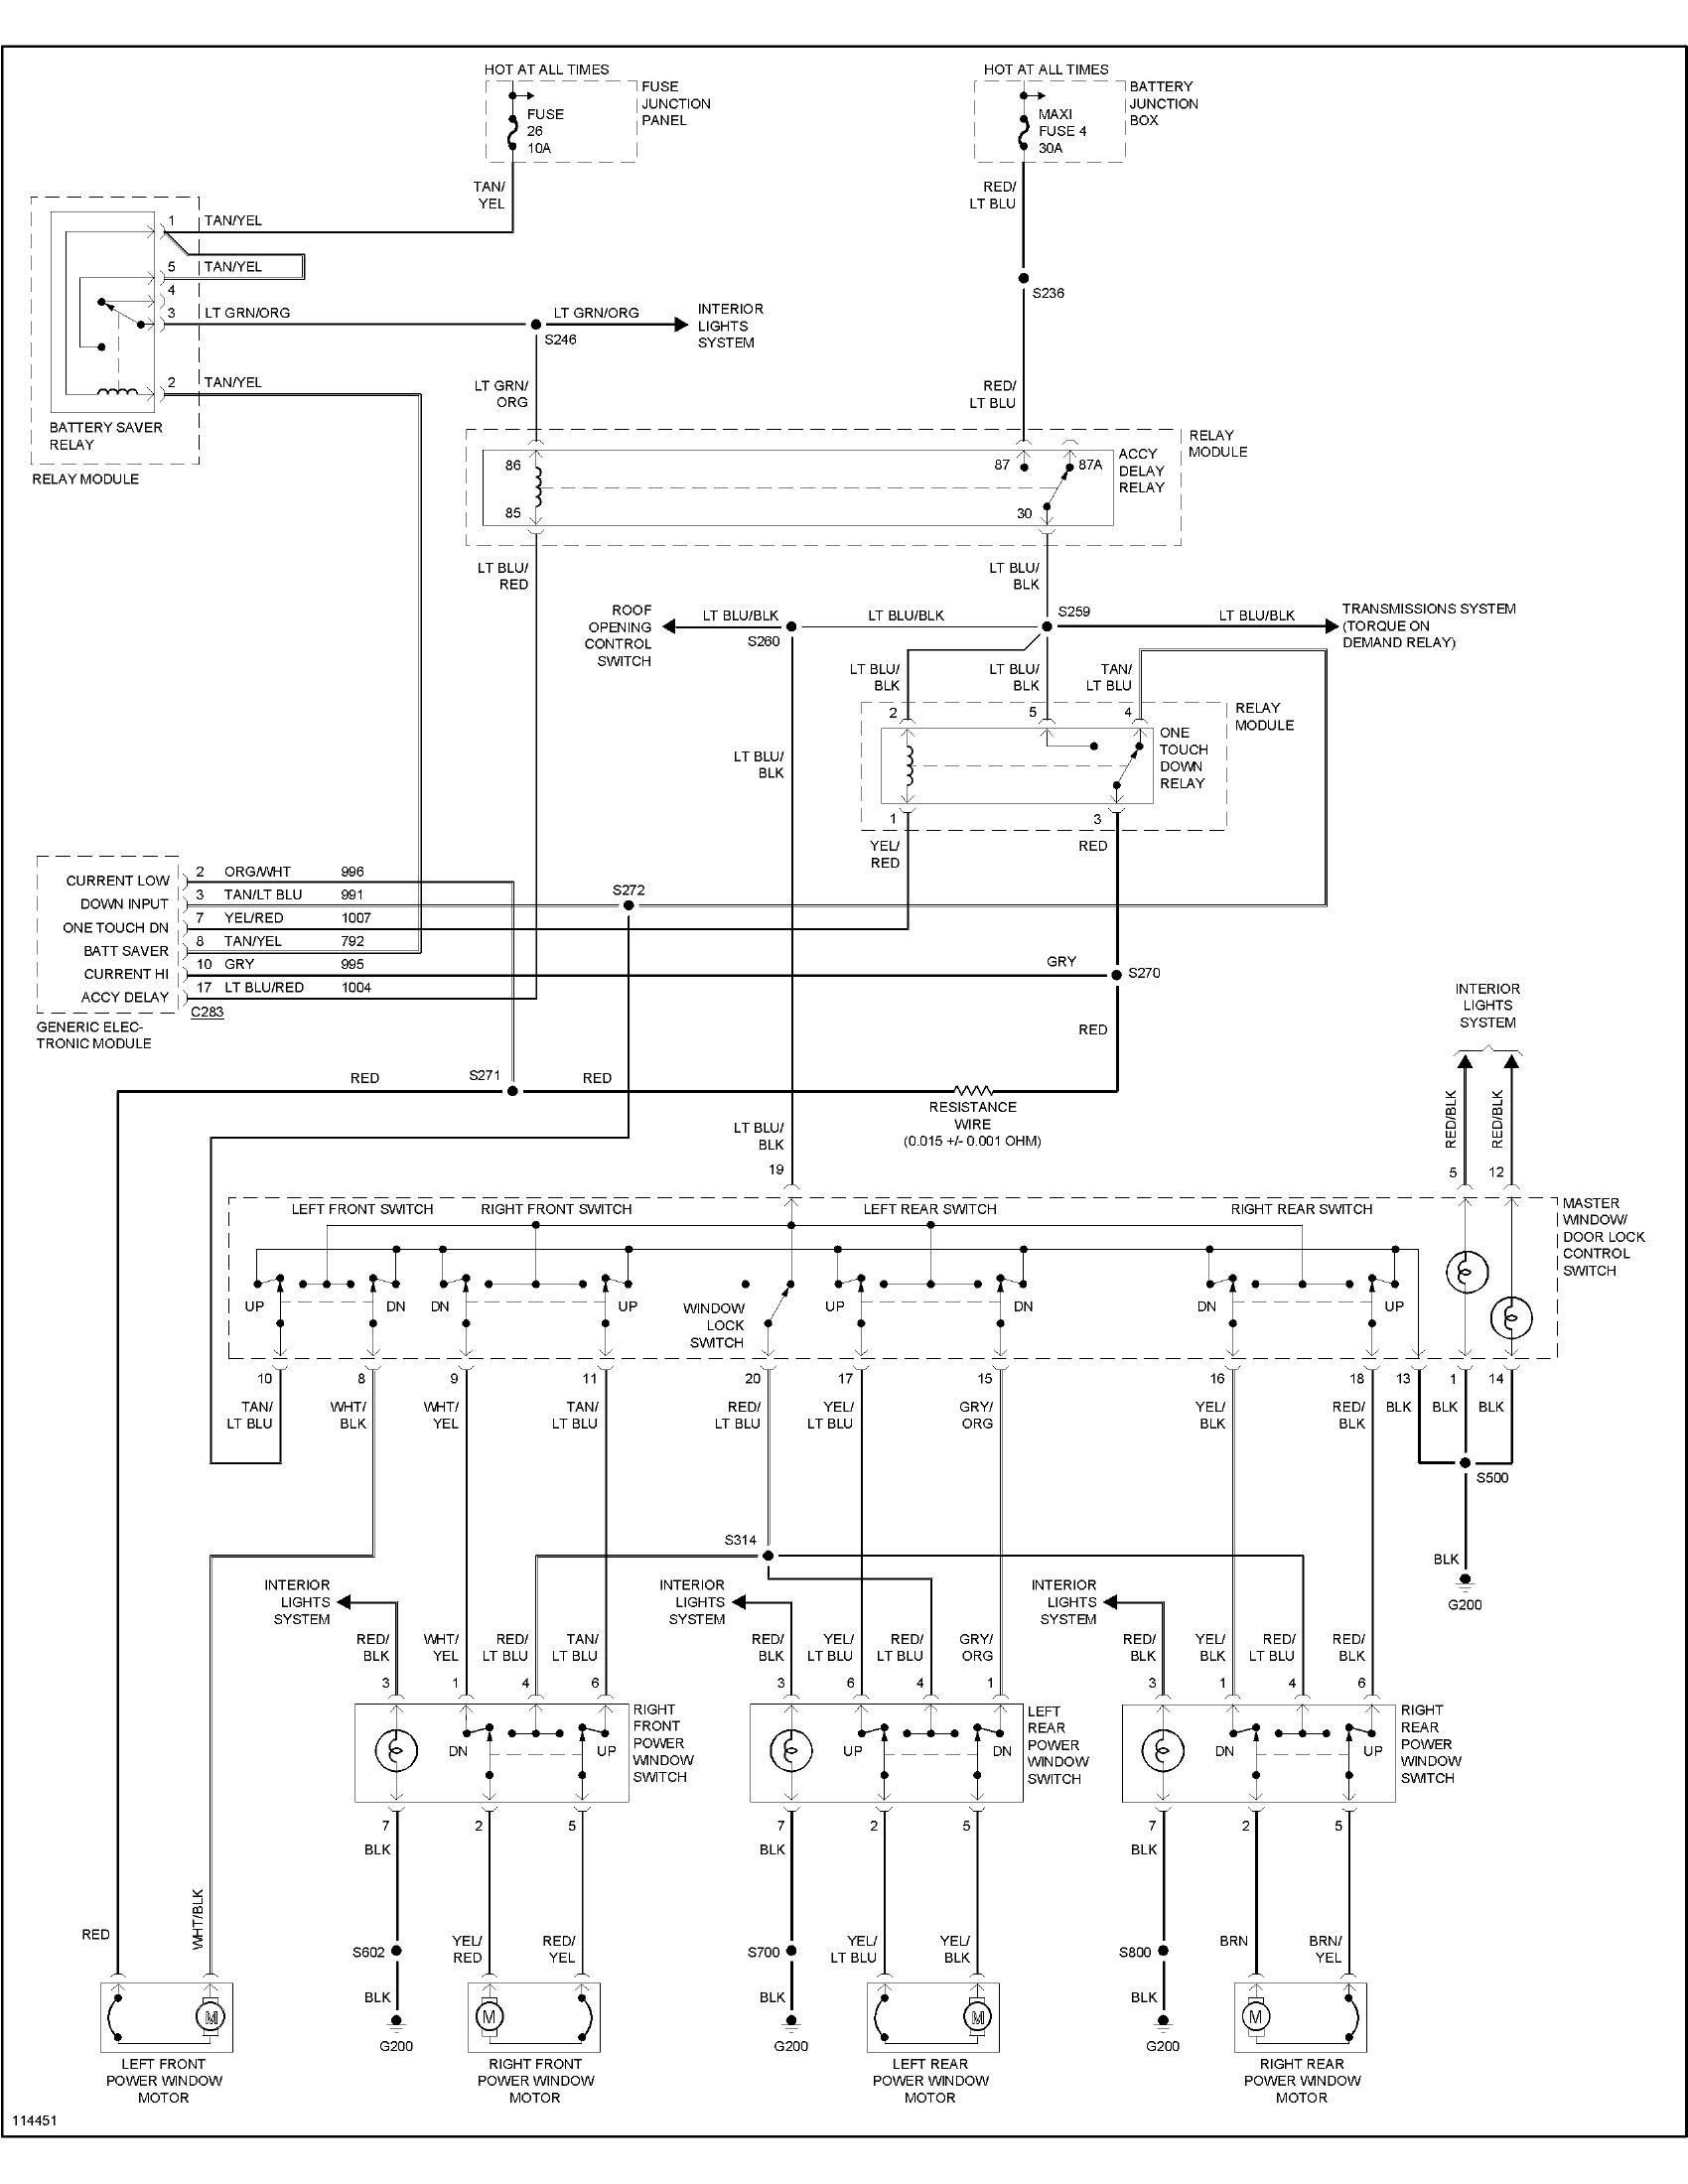 for a ford 500 wiring diagram ka sprachentogo de \u2022 2005 Ford Explorer Fuse Layout ford 500 fuse box layout wiring diagram rh 46 malibustixx de